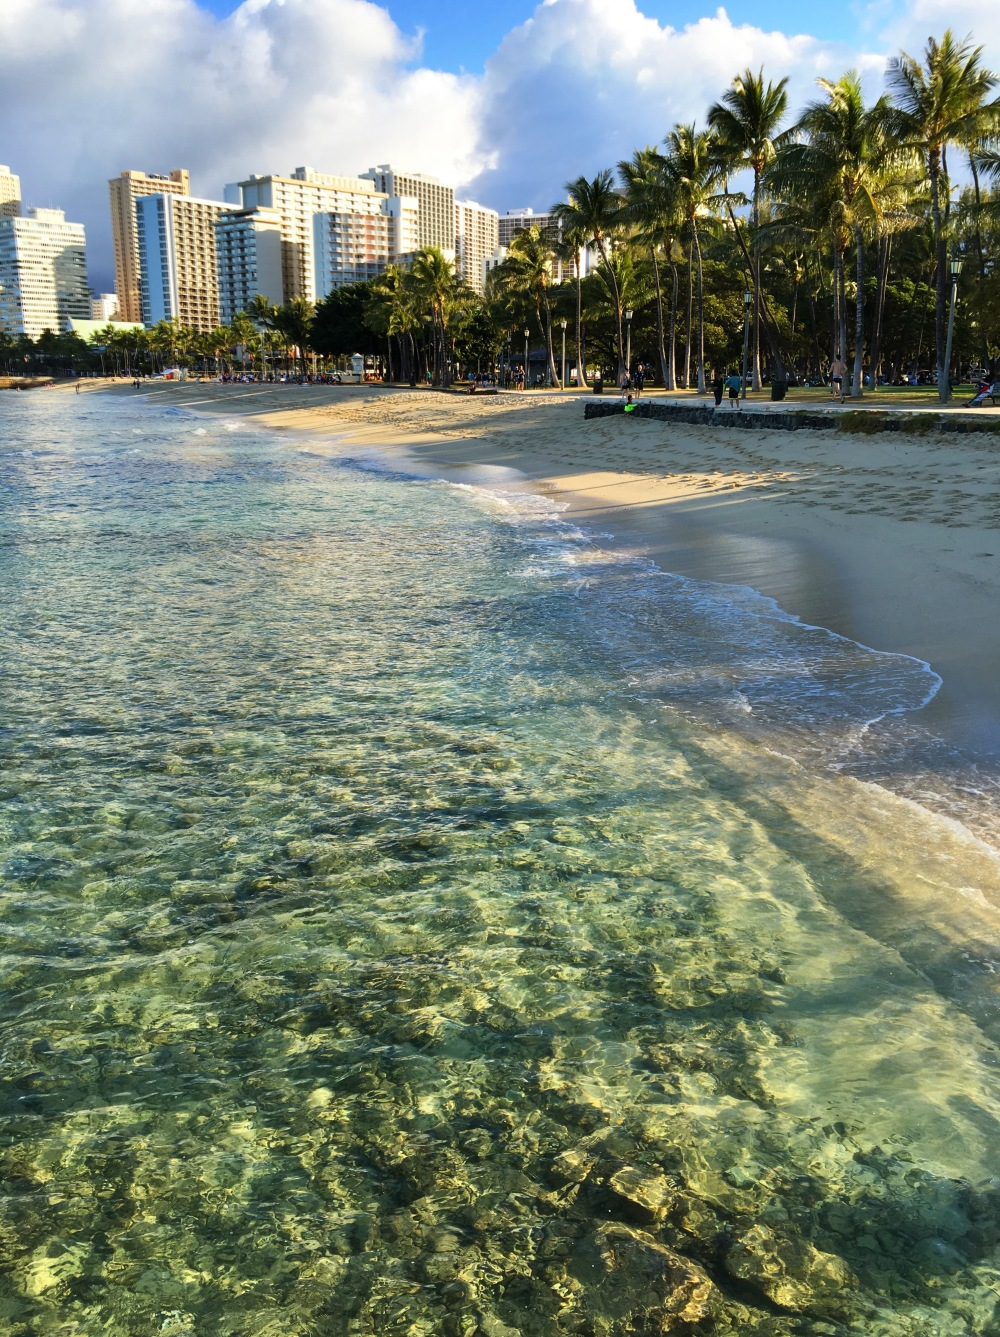 The water at Waikiki Beach is amazing